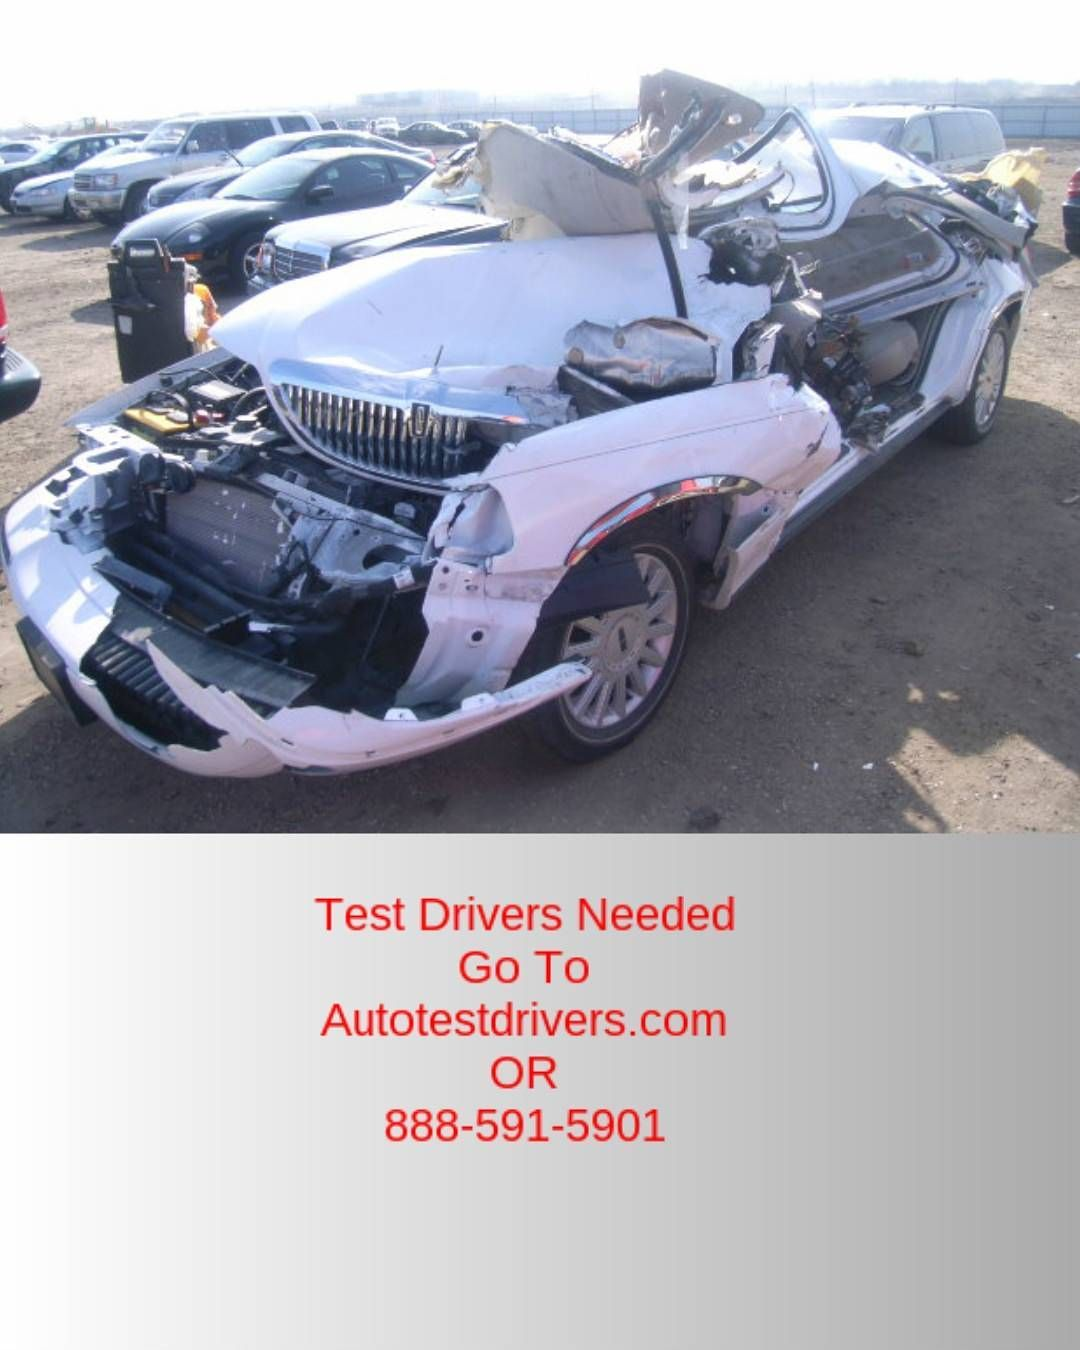 Driving Jobs In Hackensack Nj Go To Autotestdrivers Com Or 888